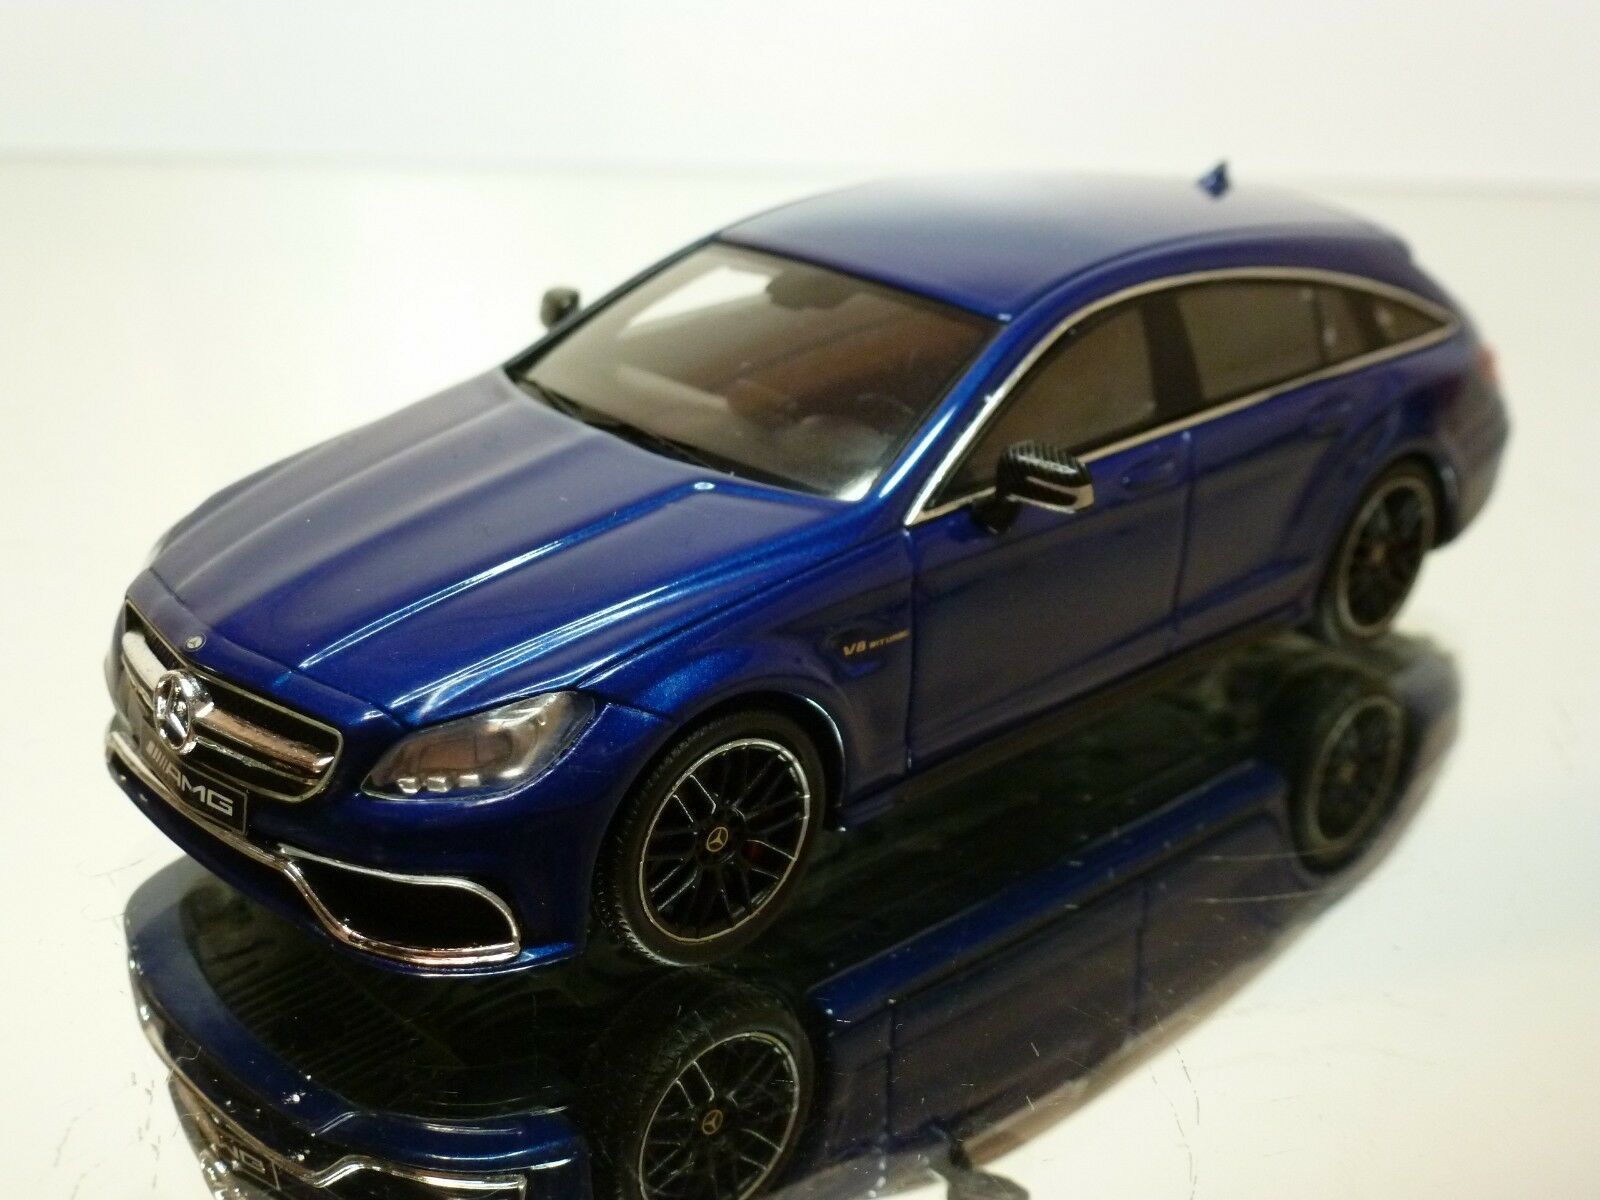 SPARK MERCEDES BENZ CLS 6.3 AMG - bleu METALLIC 1 43 - EXCELLENT - 39